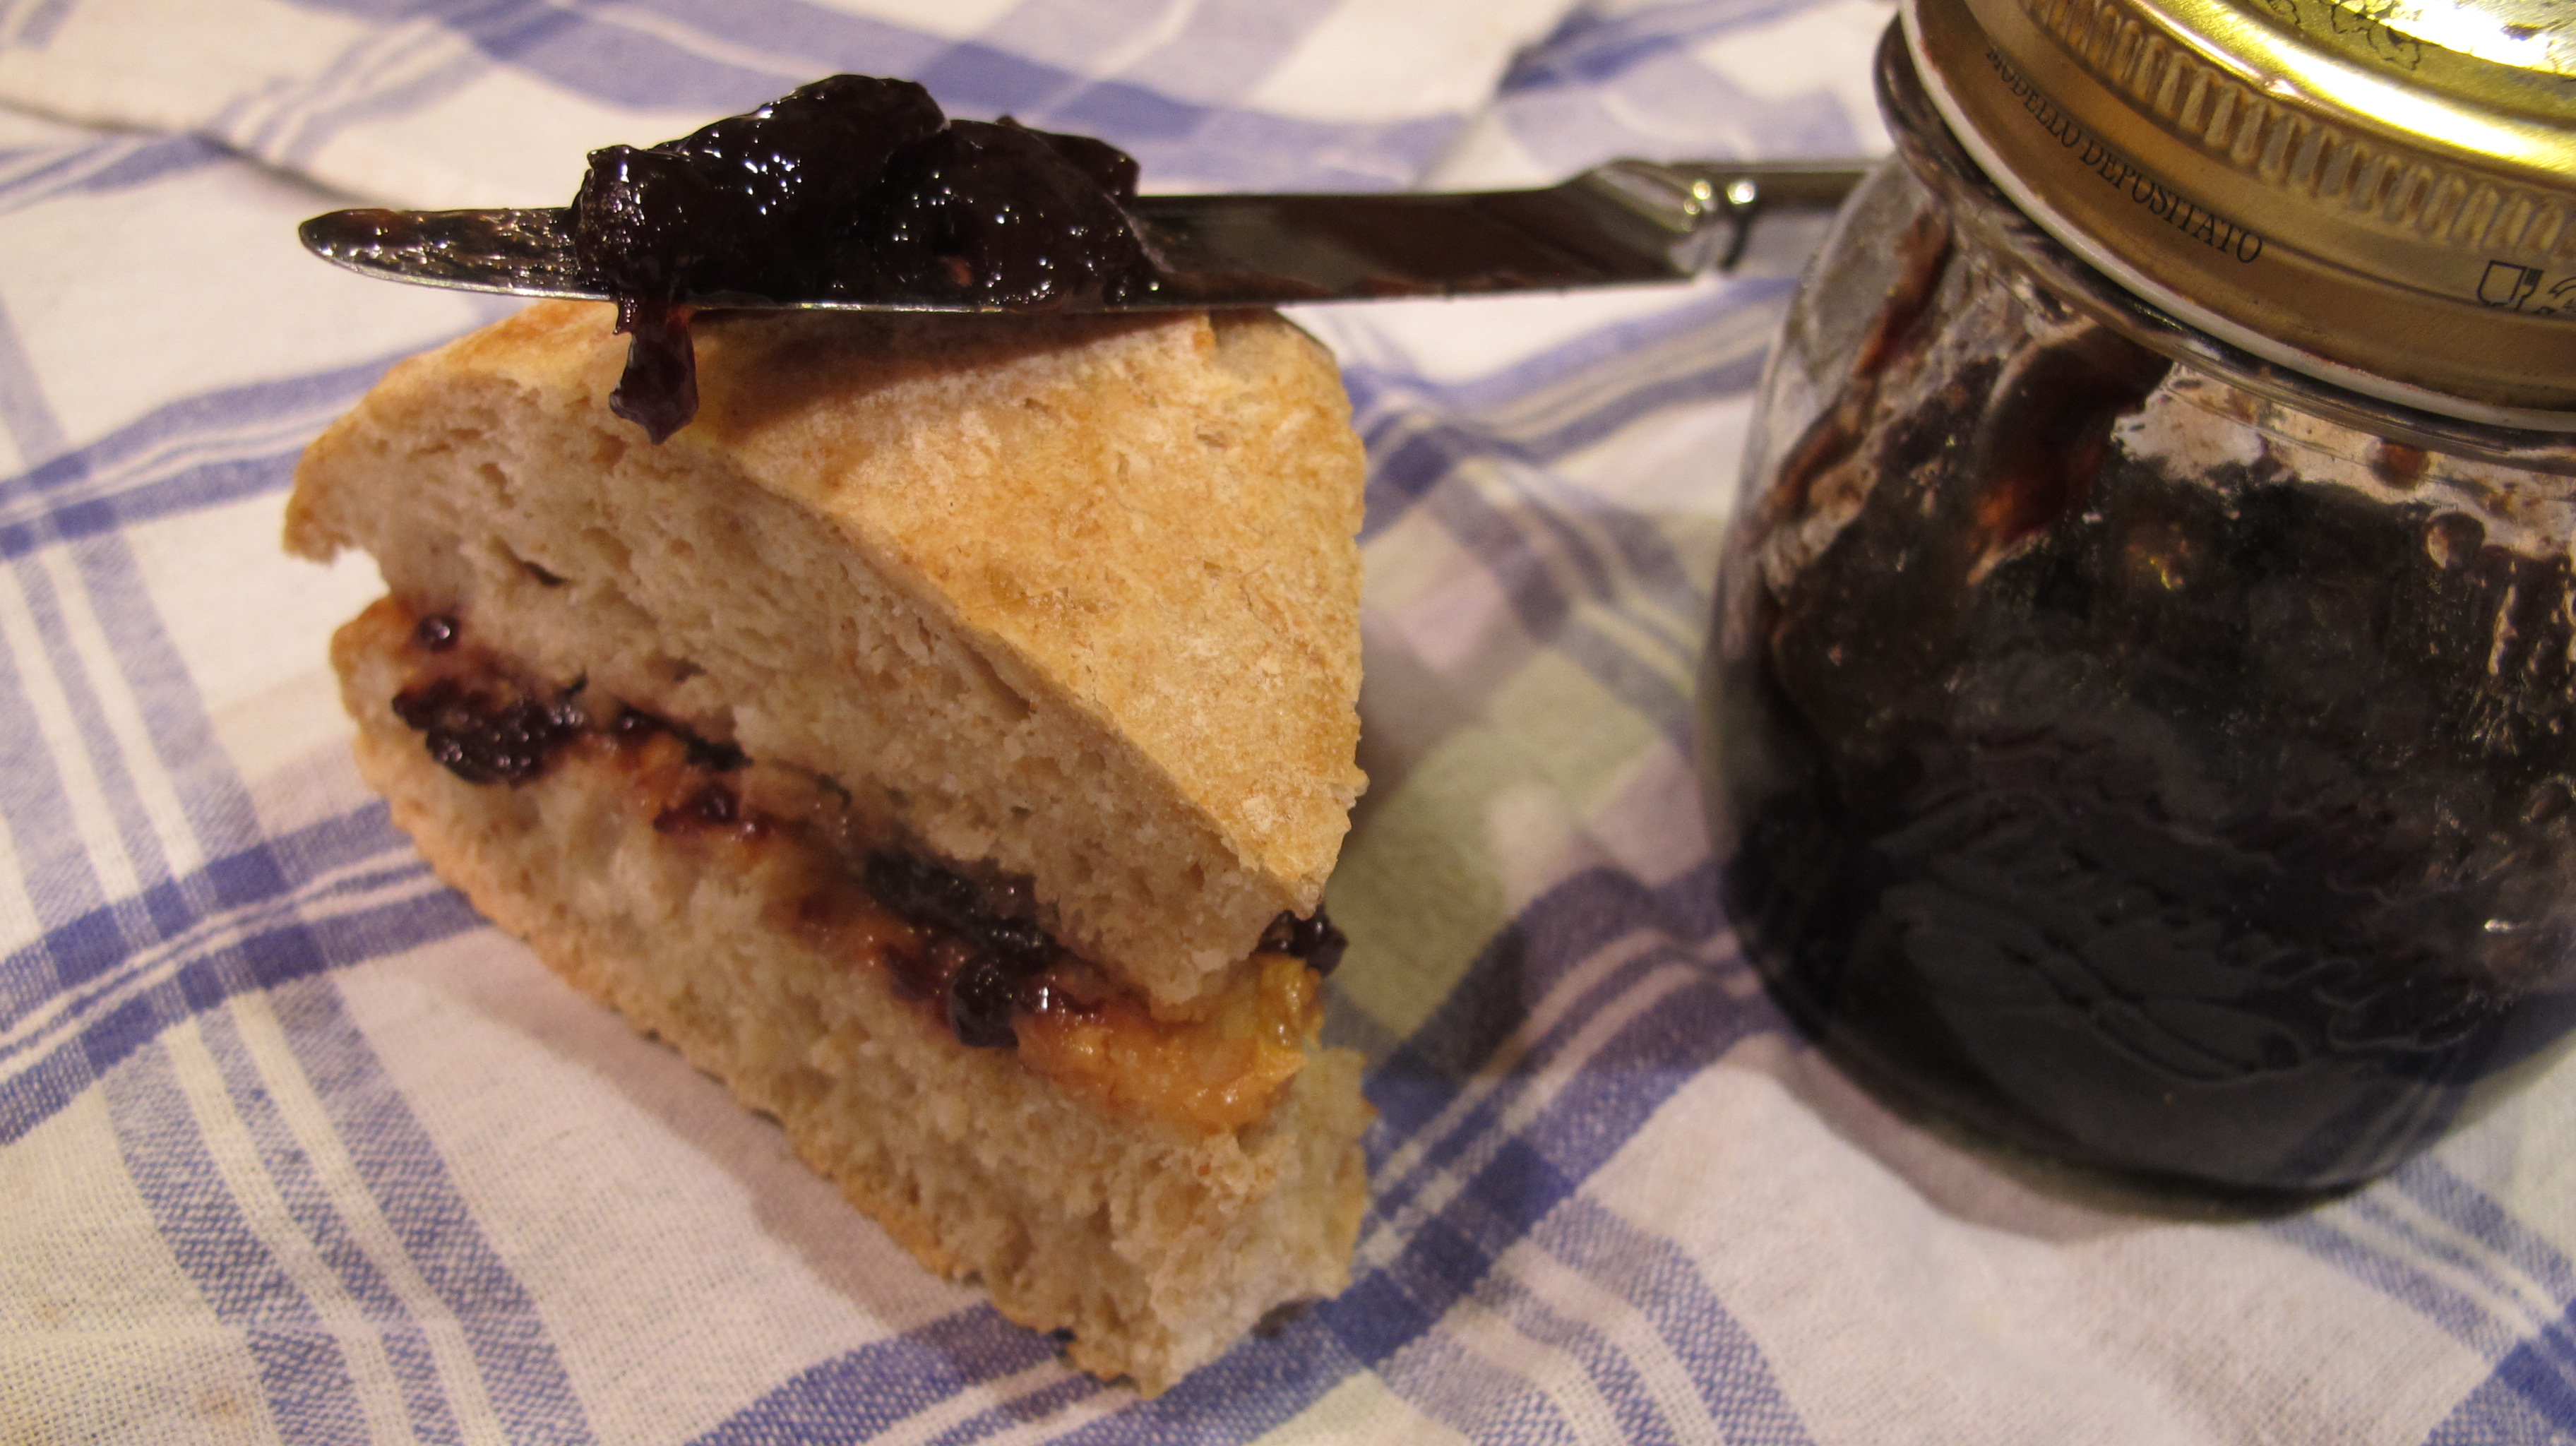 PB & J anyone? It's an american classic with an italian twist!